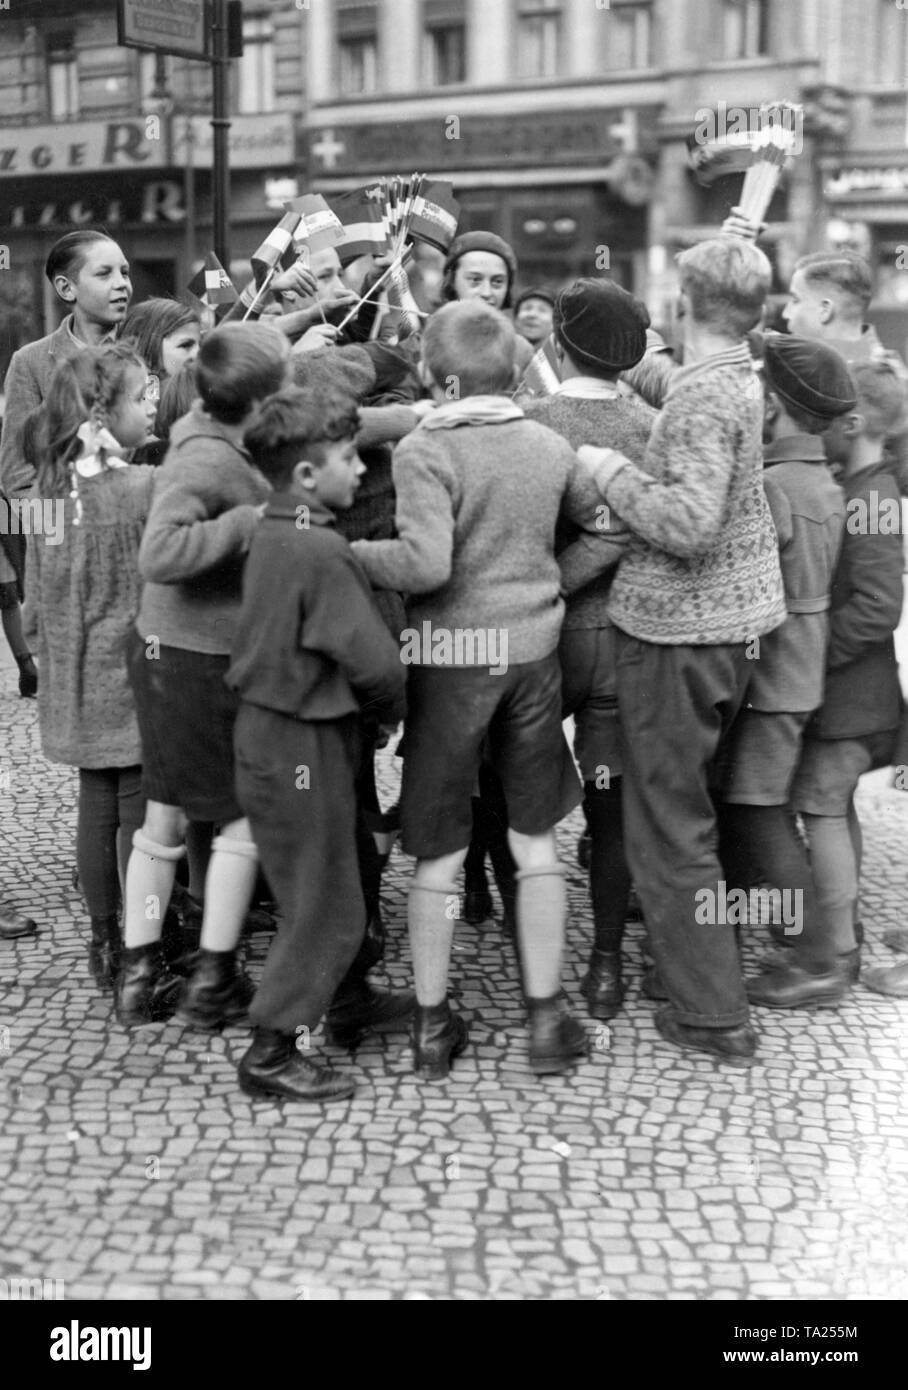 On the occasion of the Reichstag election, the Bismarck Youth distribute black-white-red flag in the borough Neukoelln, Berlin. - Stock Image